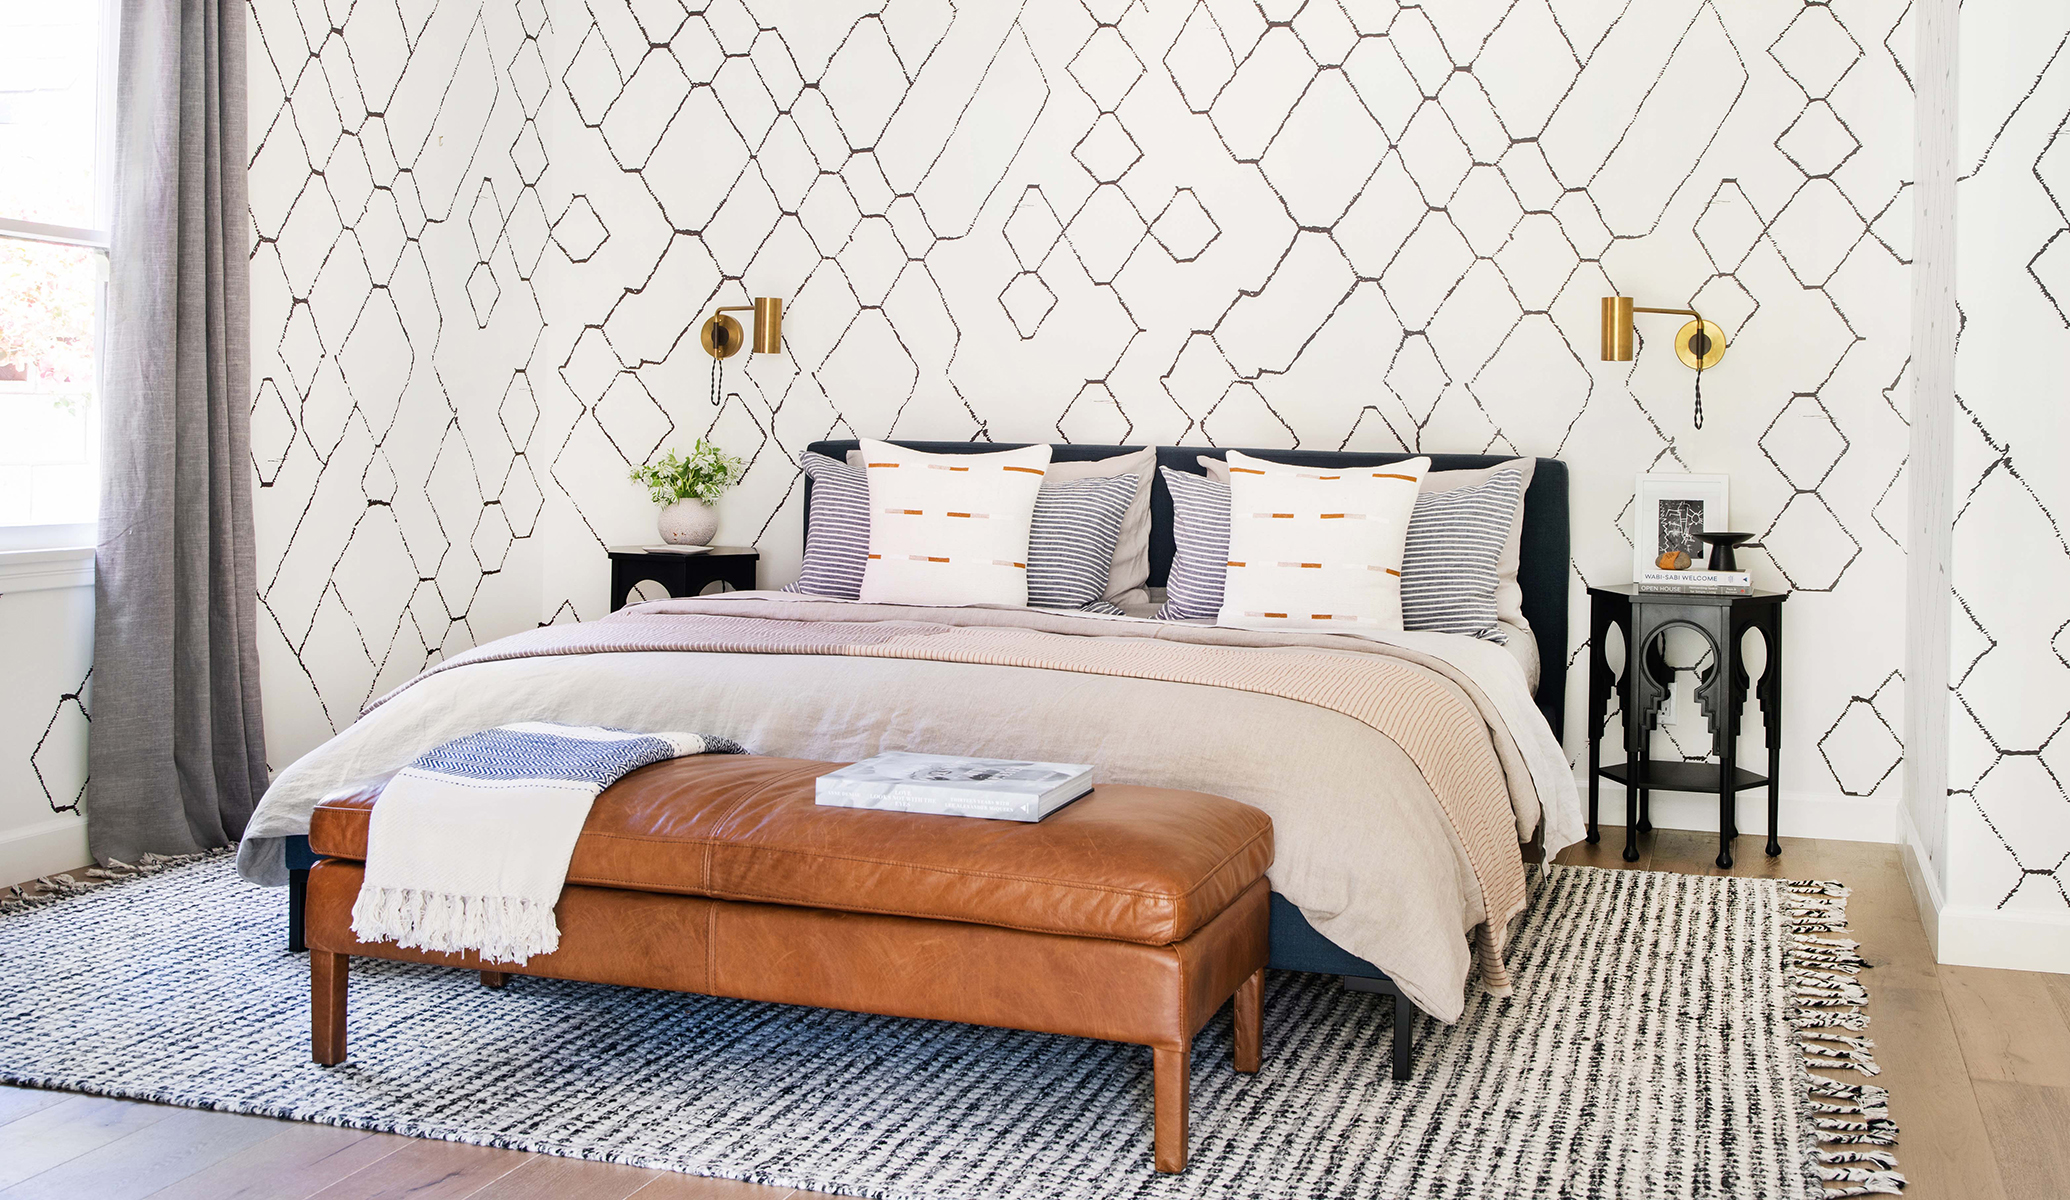 GINNY_MACDONALD_CALIFORNIA_BEDROOM_FEATURED_IMAGE